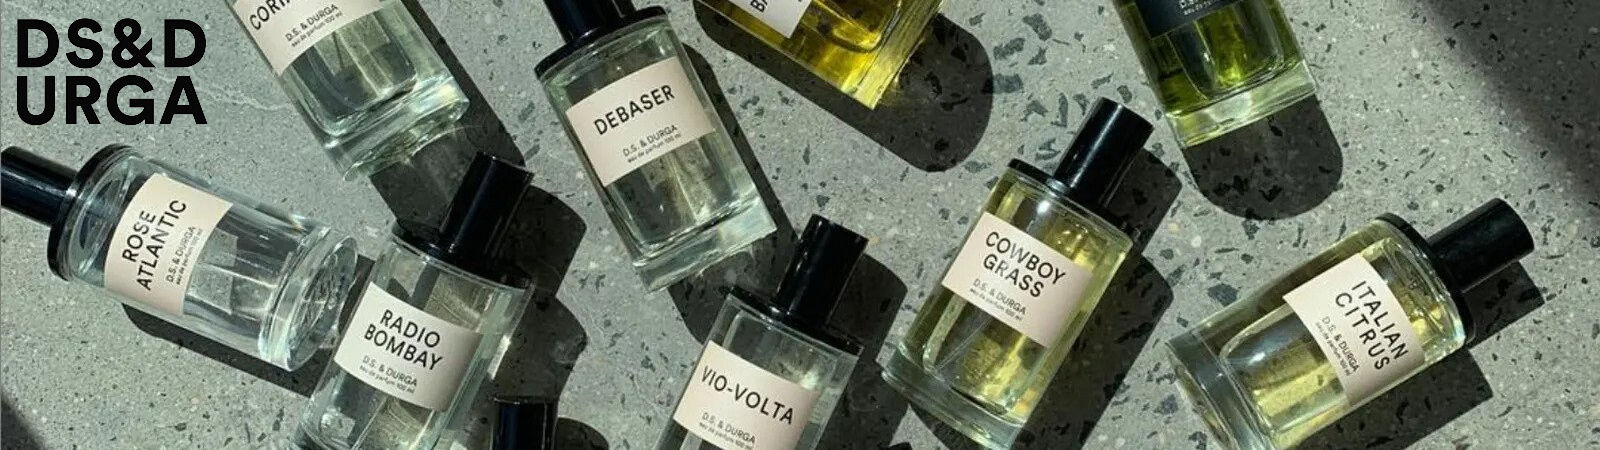 DS and Durga Aromatic Perfumes, available at Sportique.com